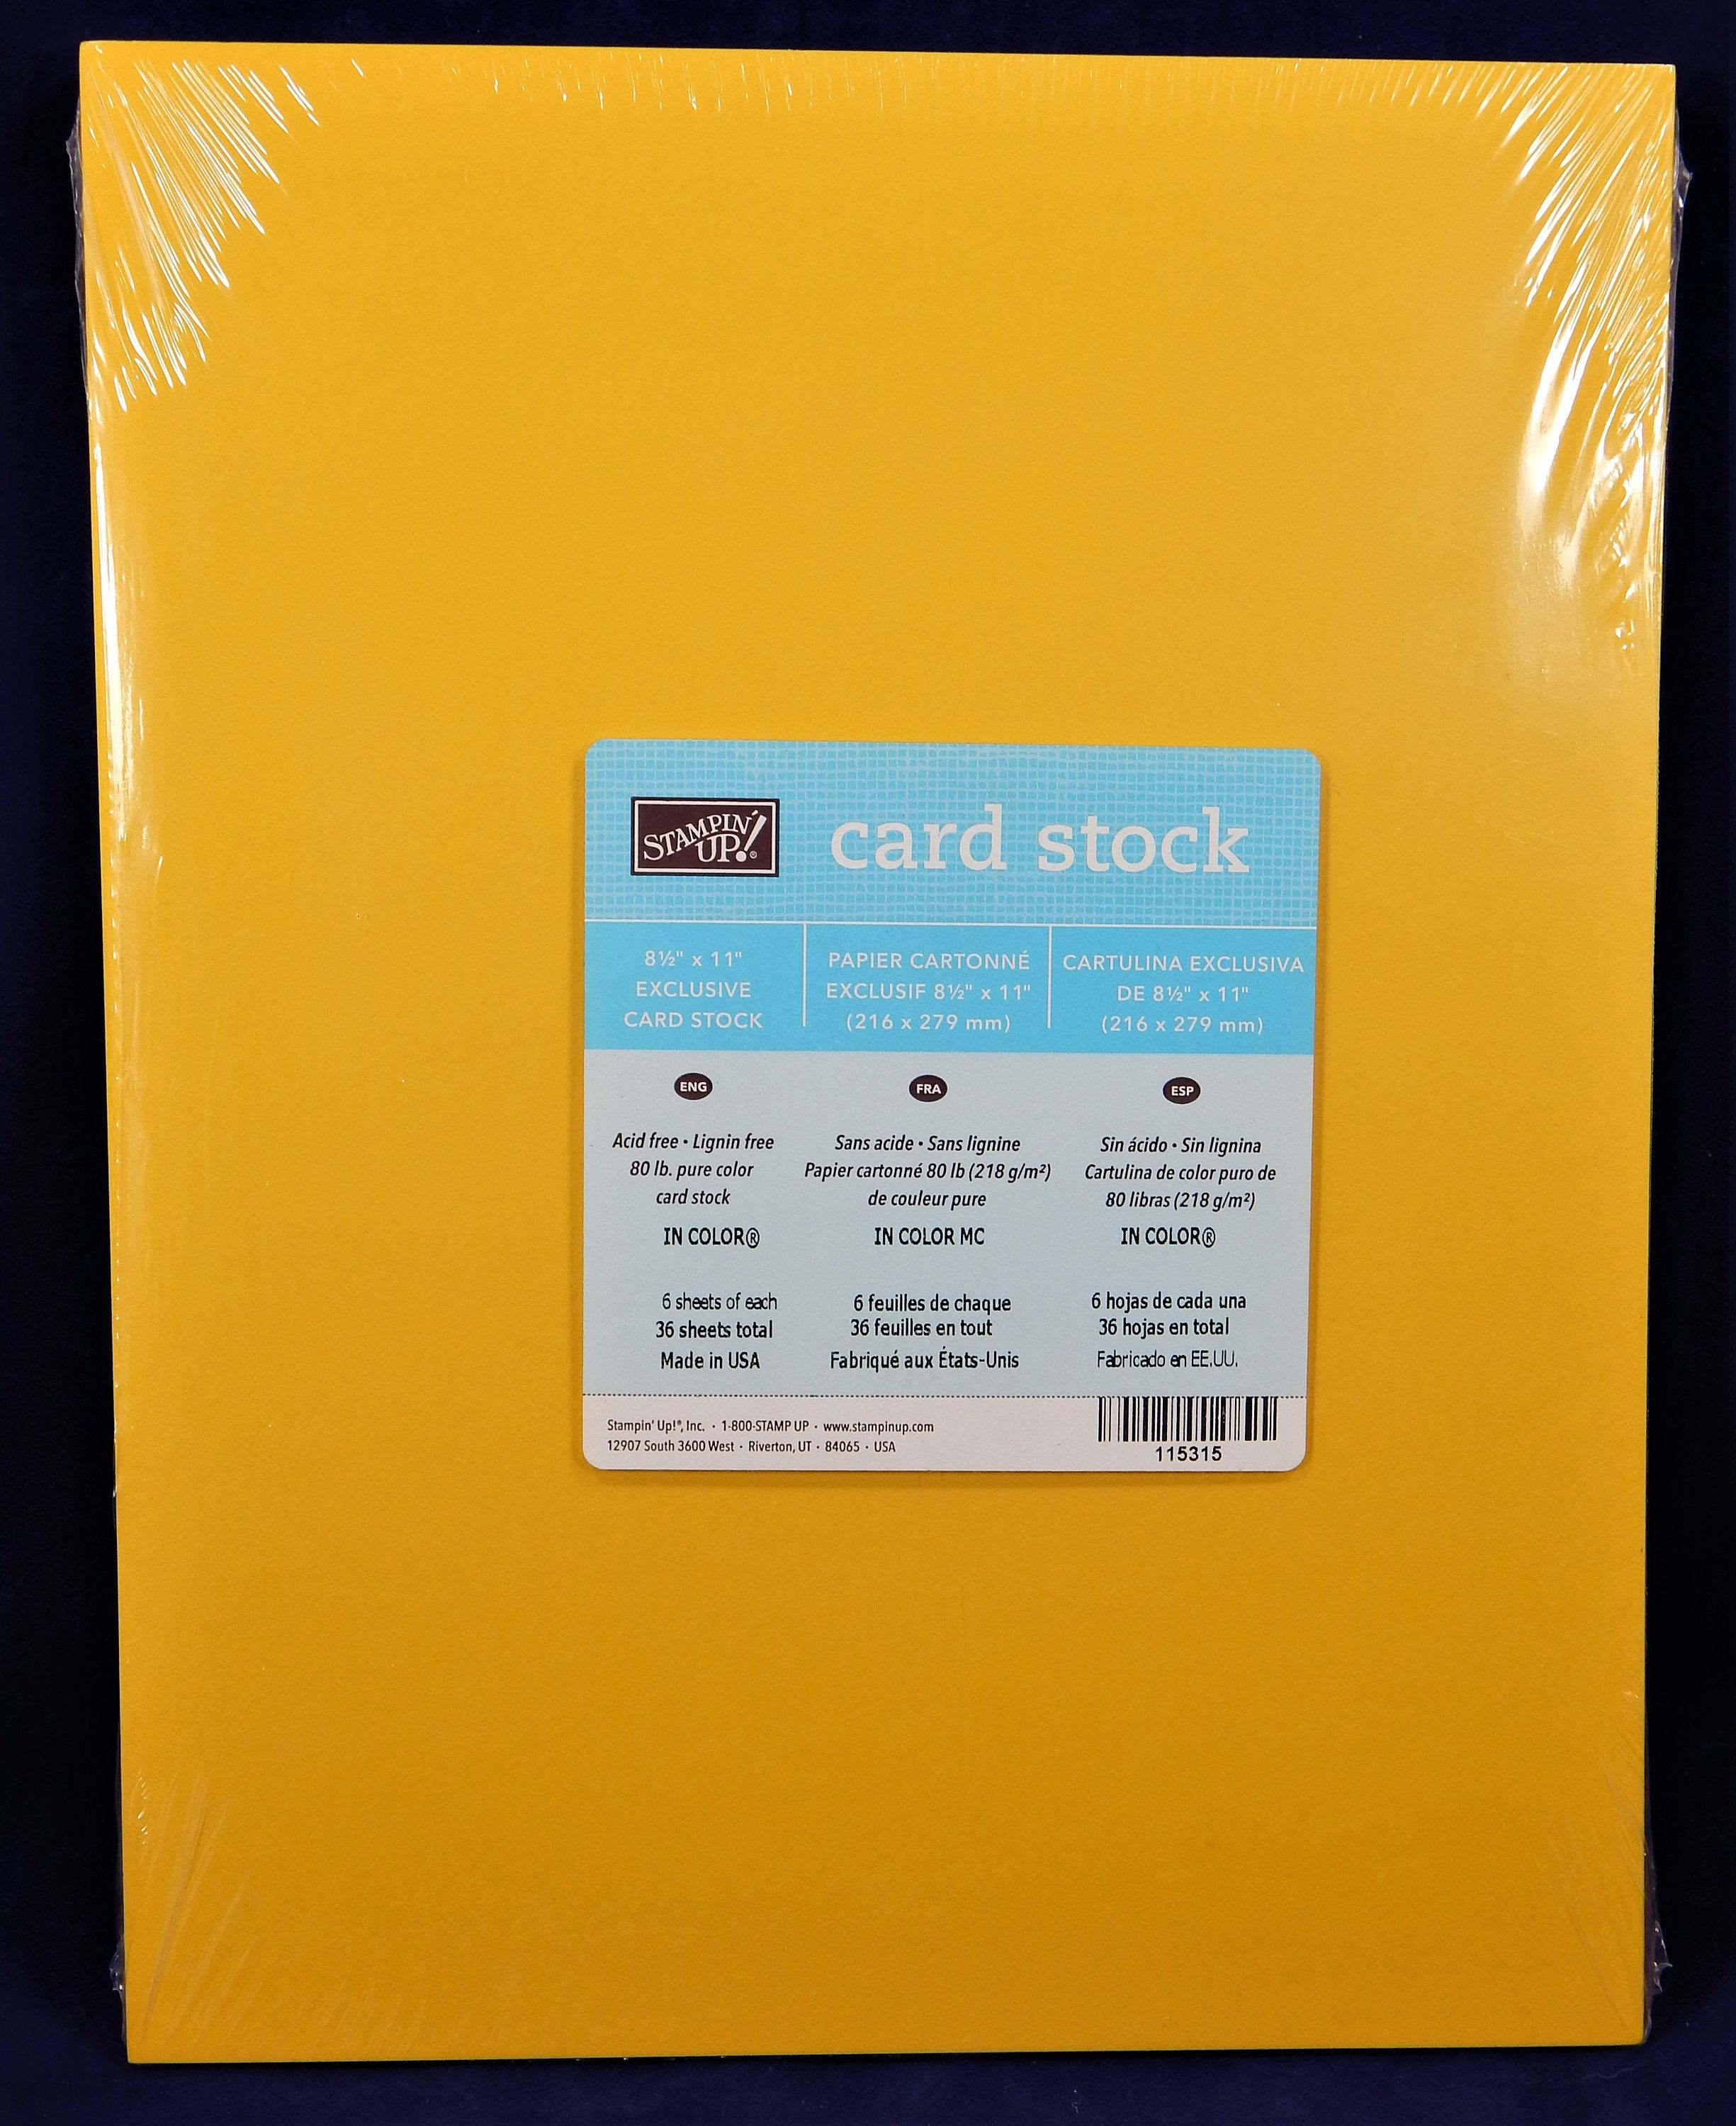 Stampin Up In Color Card Stock Paper Etsy Color Card Cardstock Paper Stampin Up